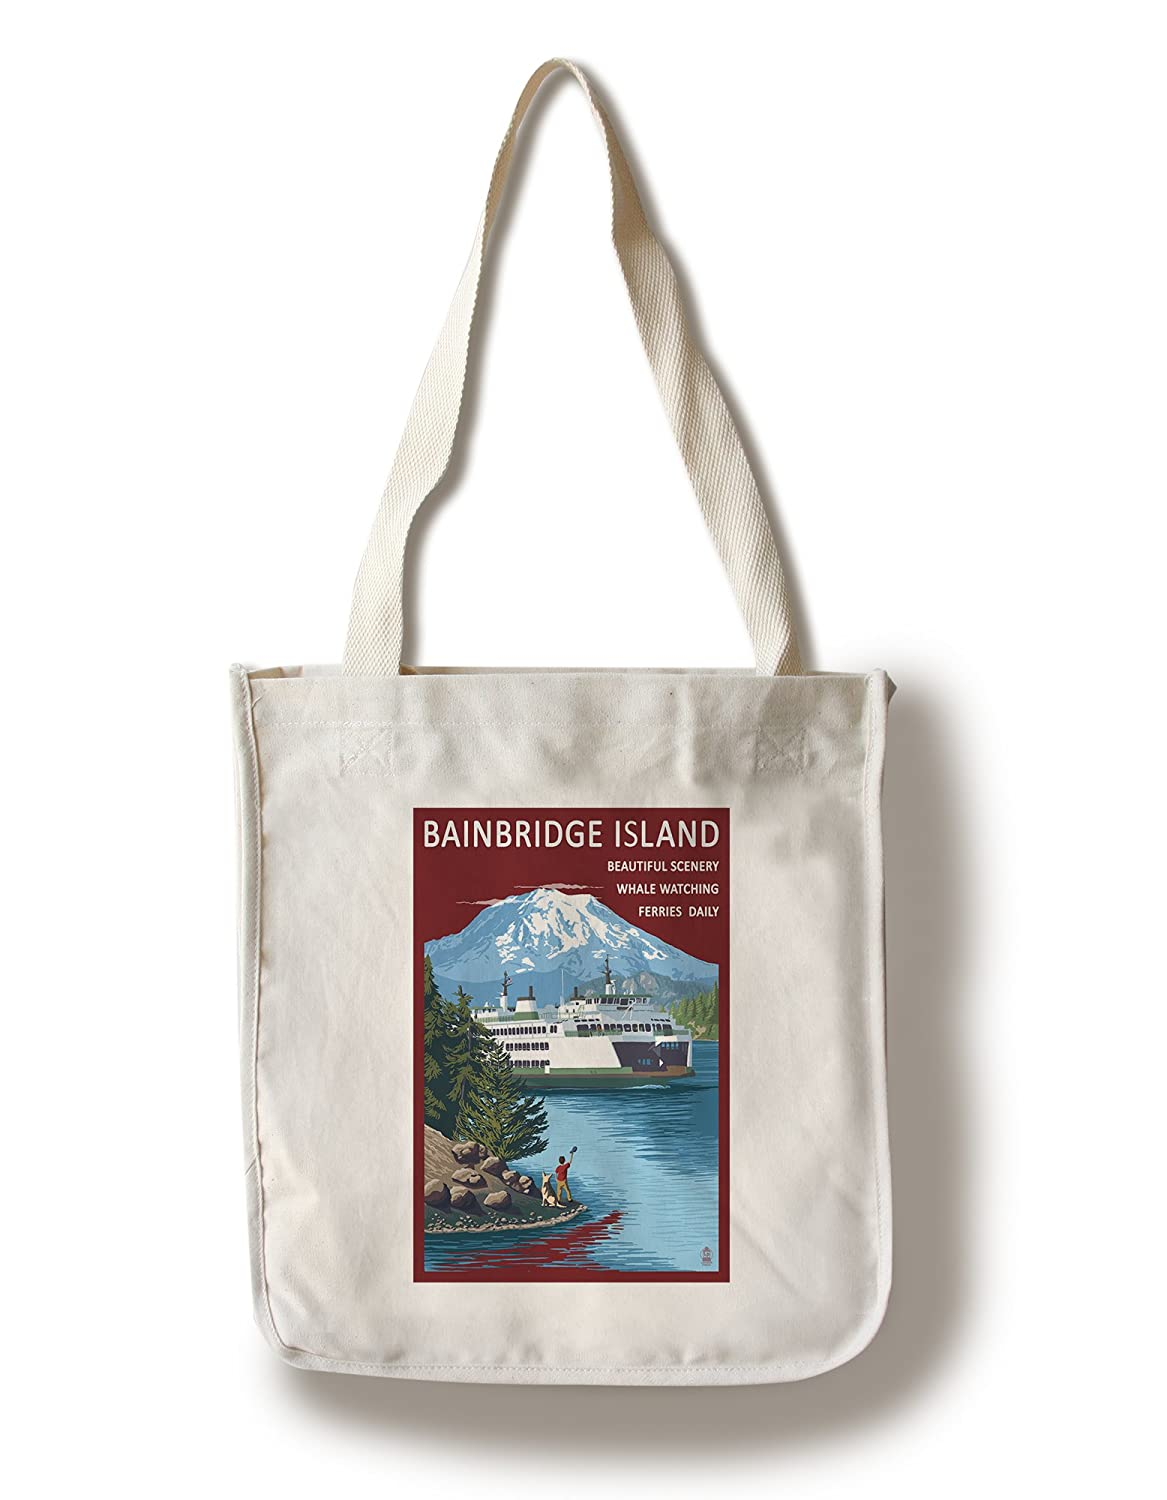 格安即決 ベインブリッジアイランド LANT-33227-TT – – Ferry and島 Canvas Tote Bag LANT-33227-TT Bag B018819VI4 Canvas Tote Bag, 妹背牛町:a07ba075 --- catconnects-ie.access.secure-ssl-servers.org